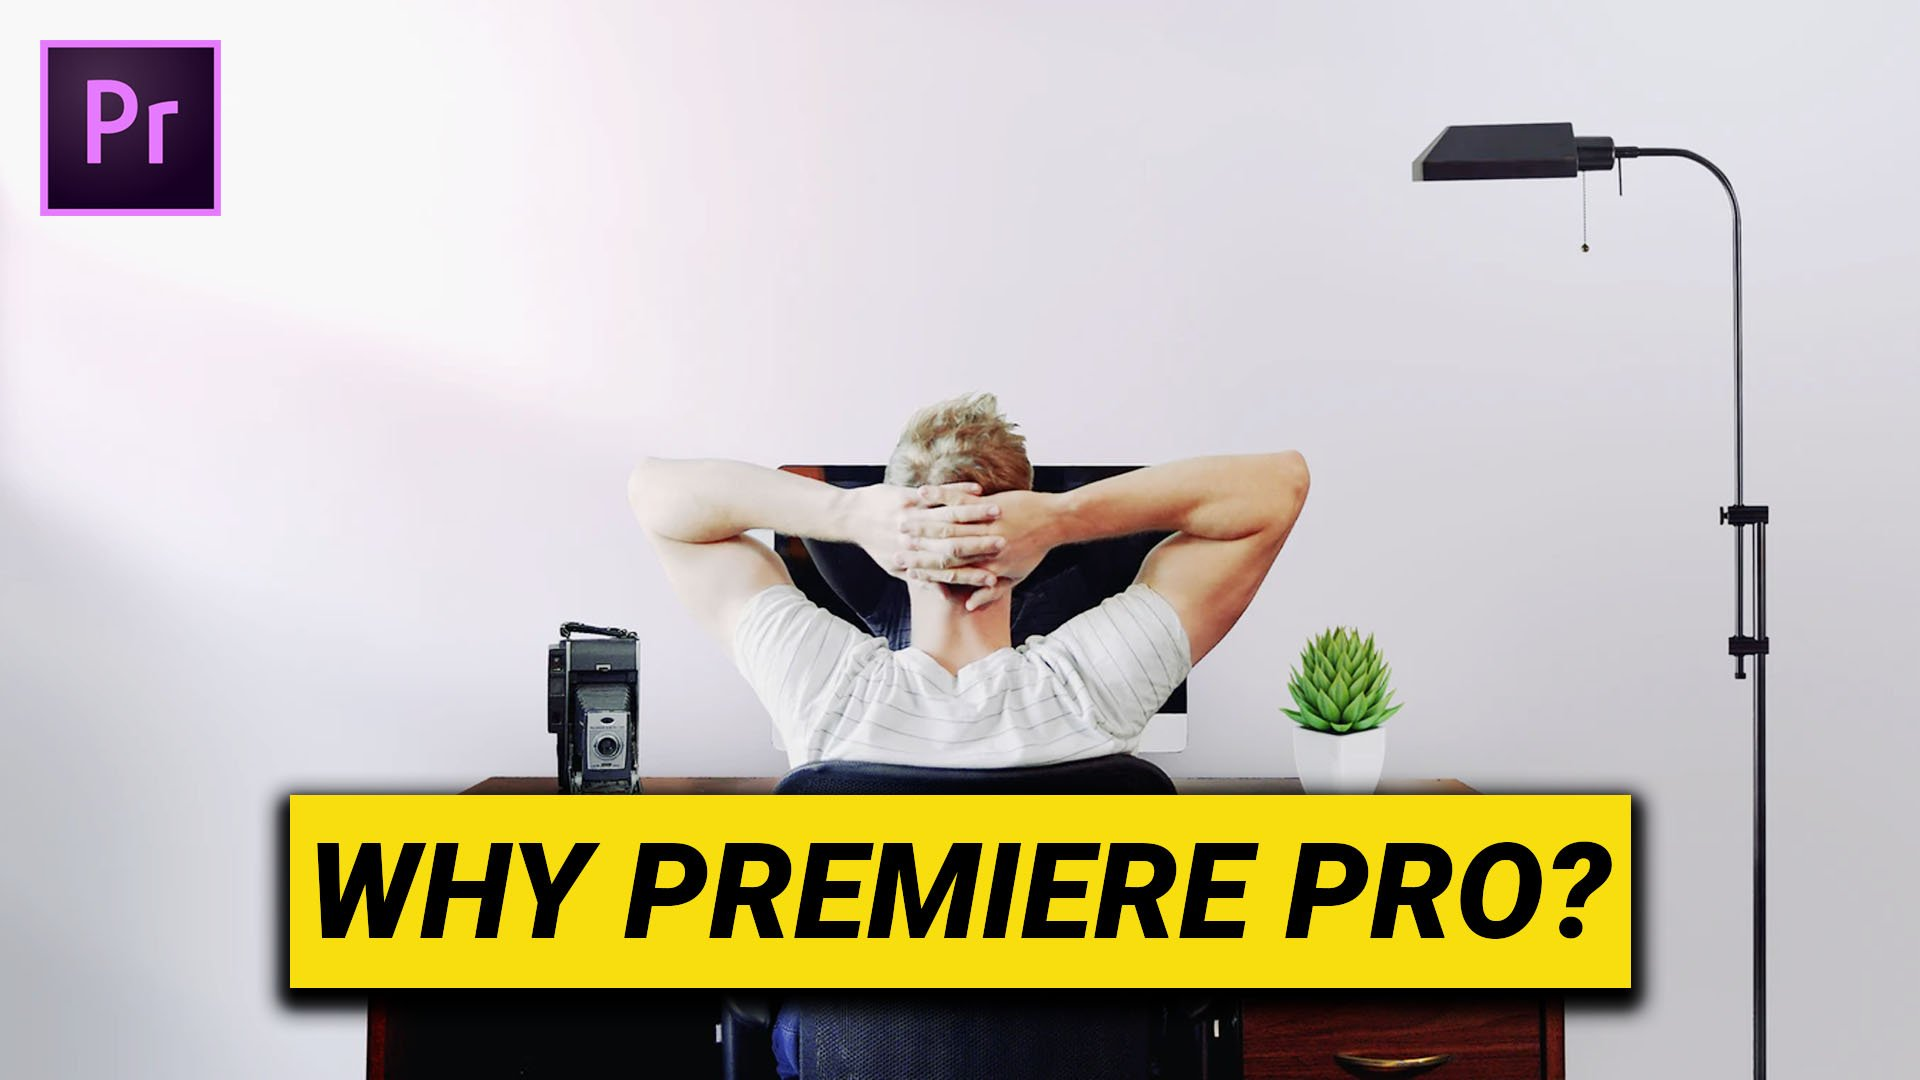 why is use premiere pro